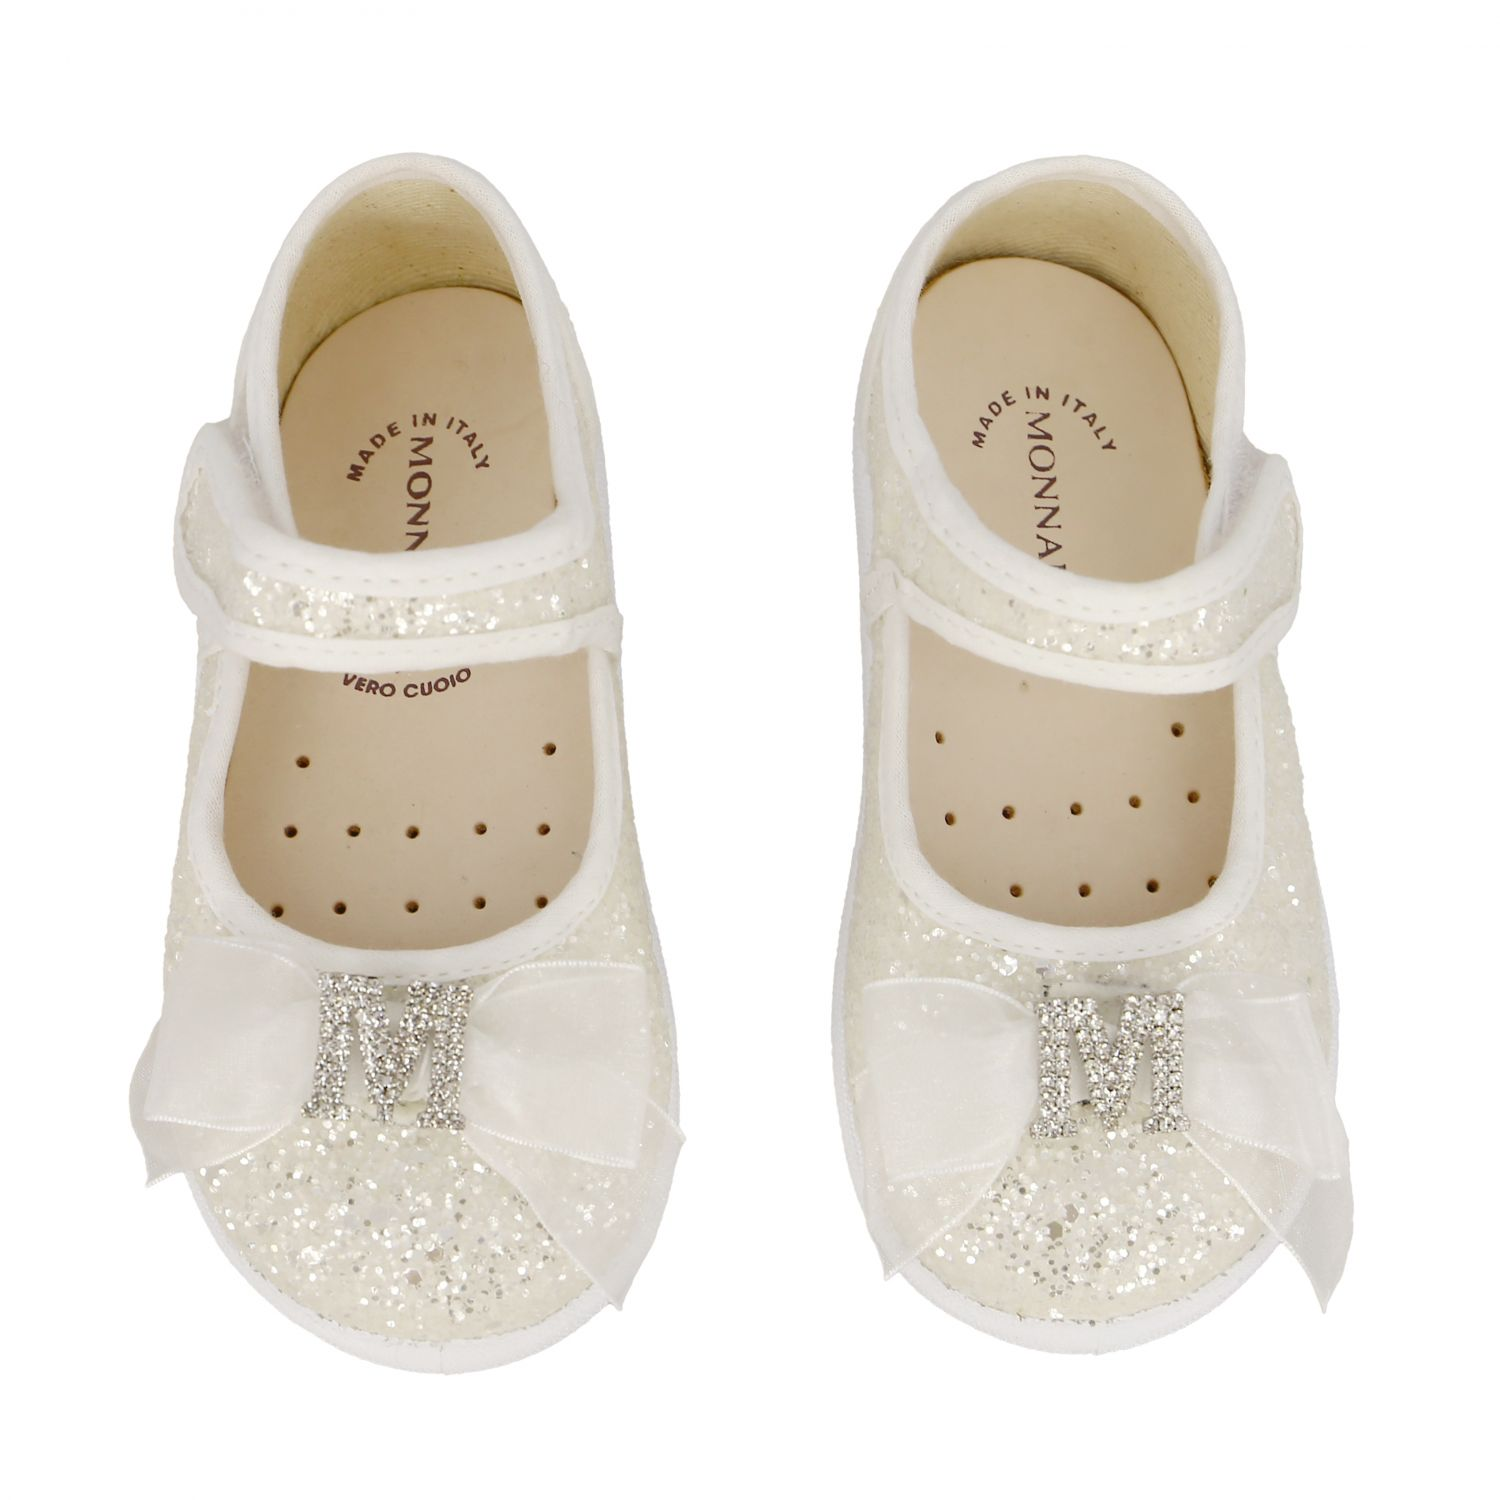 Monnalisa ballet flats in glitter fabric with bow and rhinestones white 3